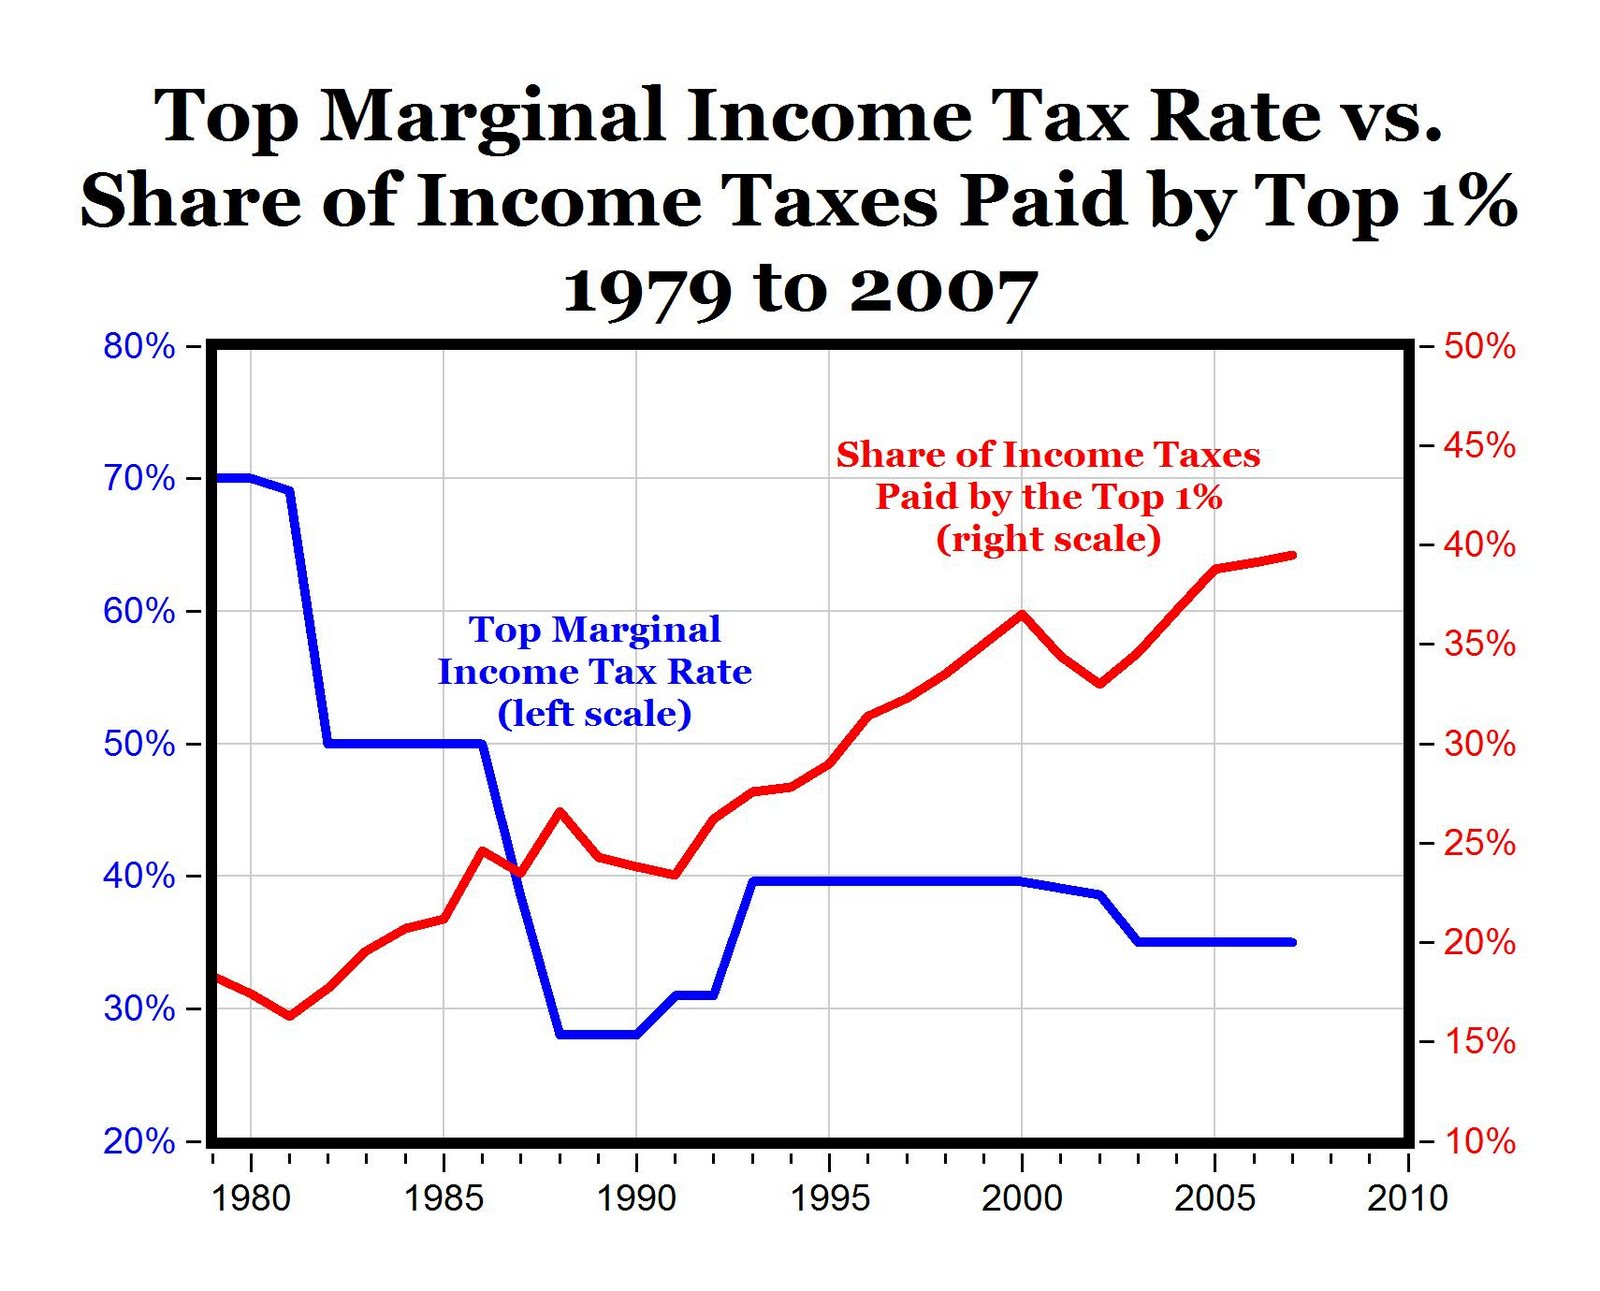 CARPE DIEM: Tax Rates and Share of Tax Revenues from Top 1%